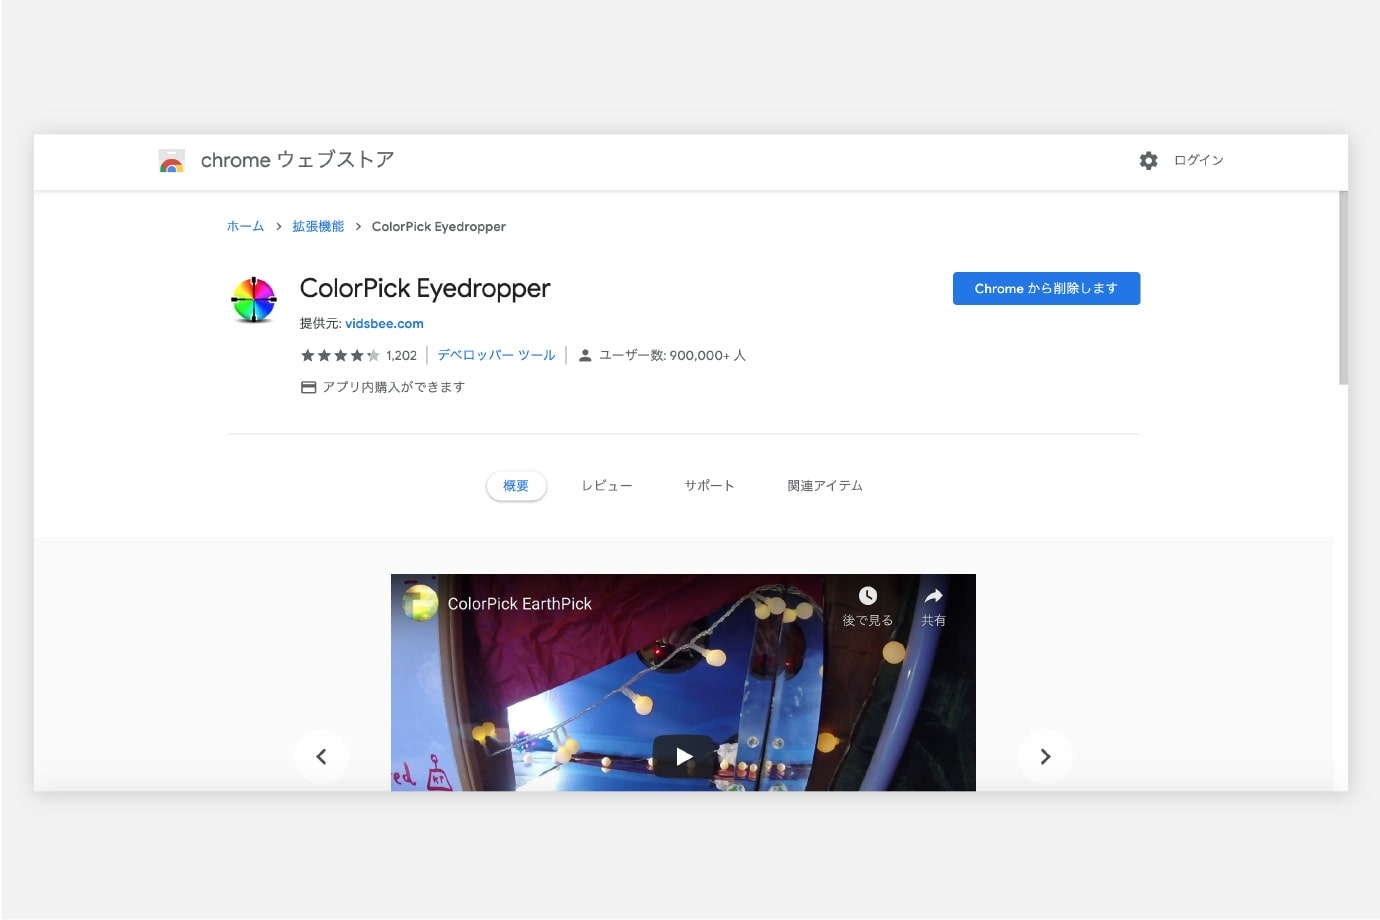 ColorPick Eyedropper Chromeダウンロード画面